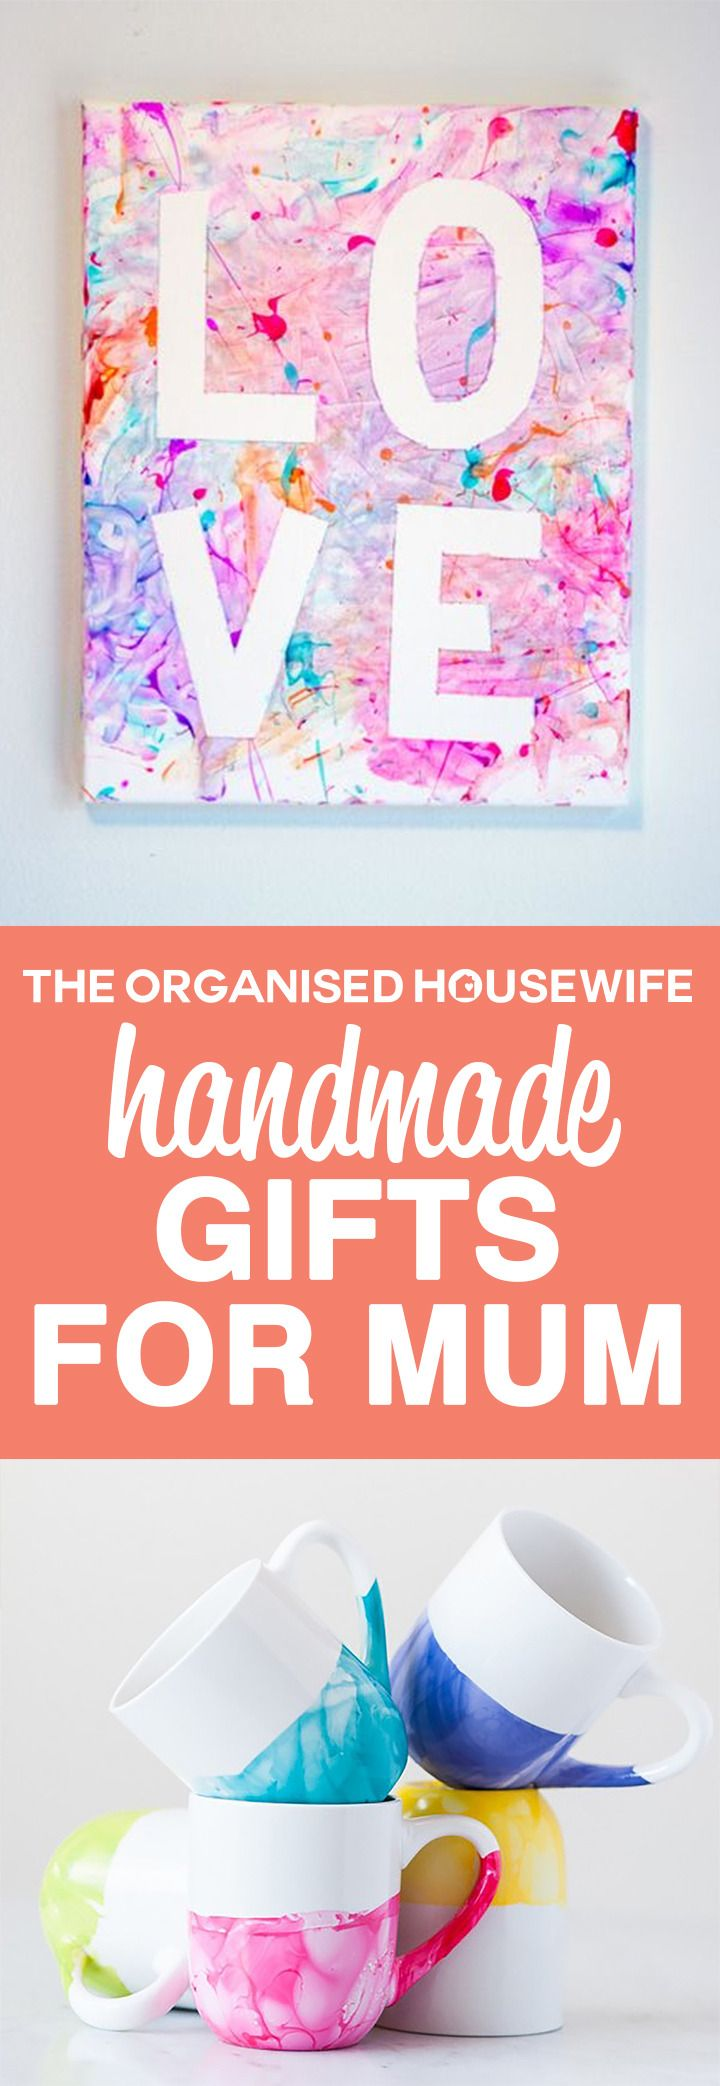 9 Handmade Gifts For Mum Art Stuff Christmas Gifts For